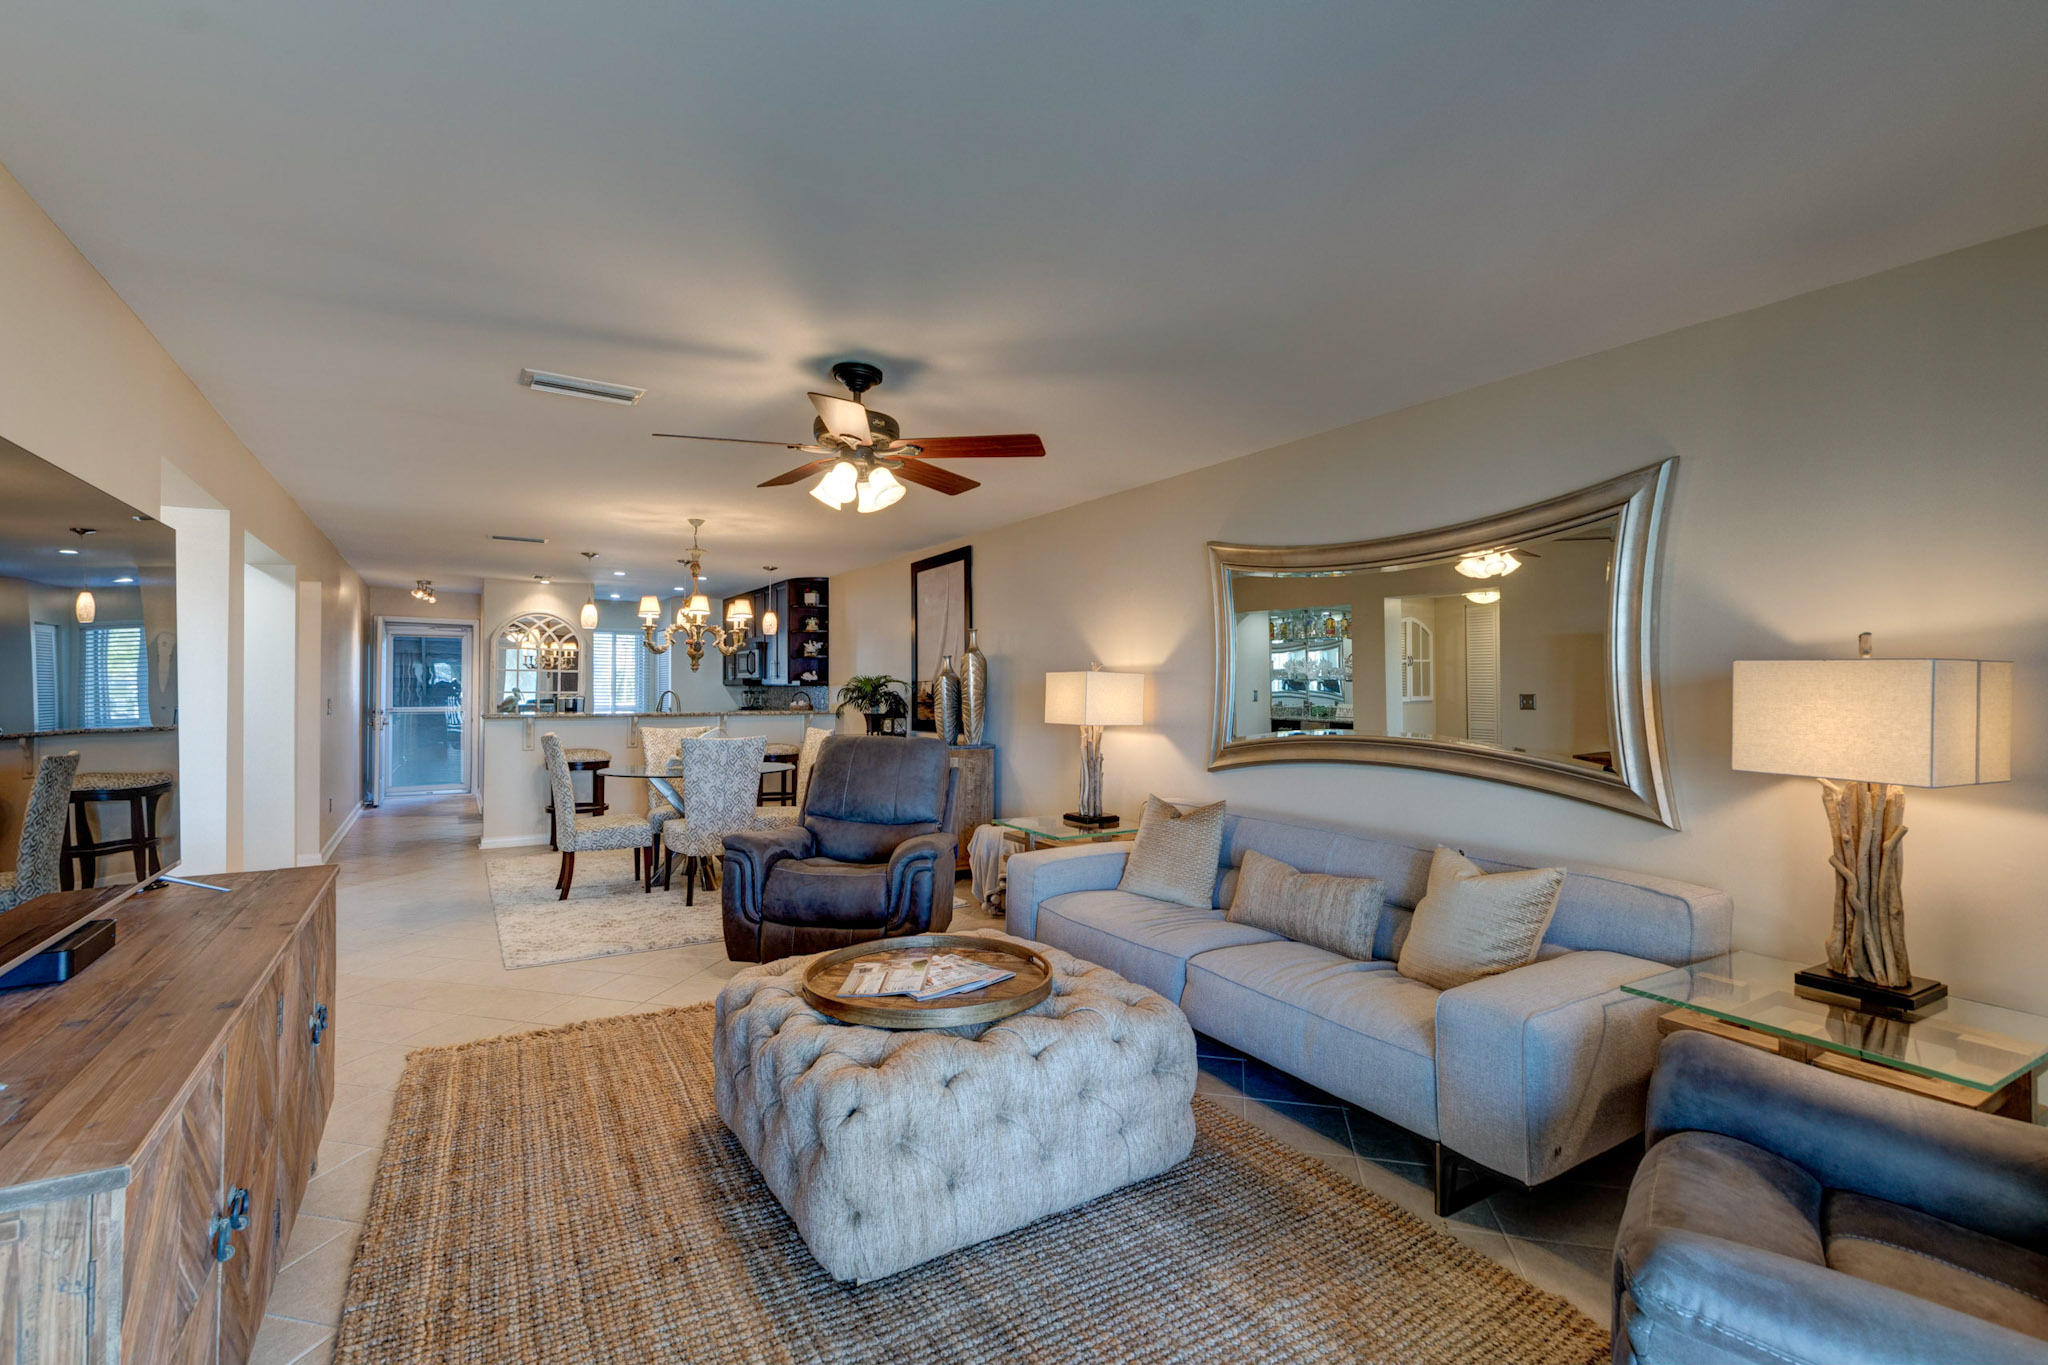 Mariners Cay Homes For Sale - 76 Mariners Cay, Folly Beach, SC - 27